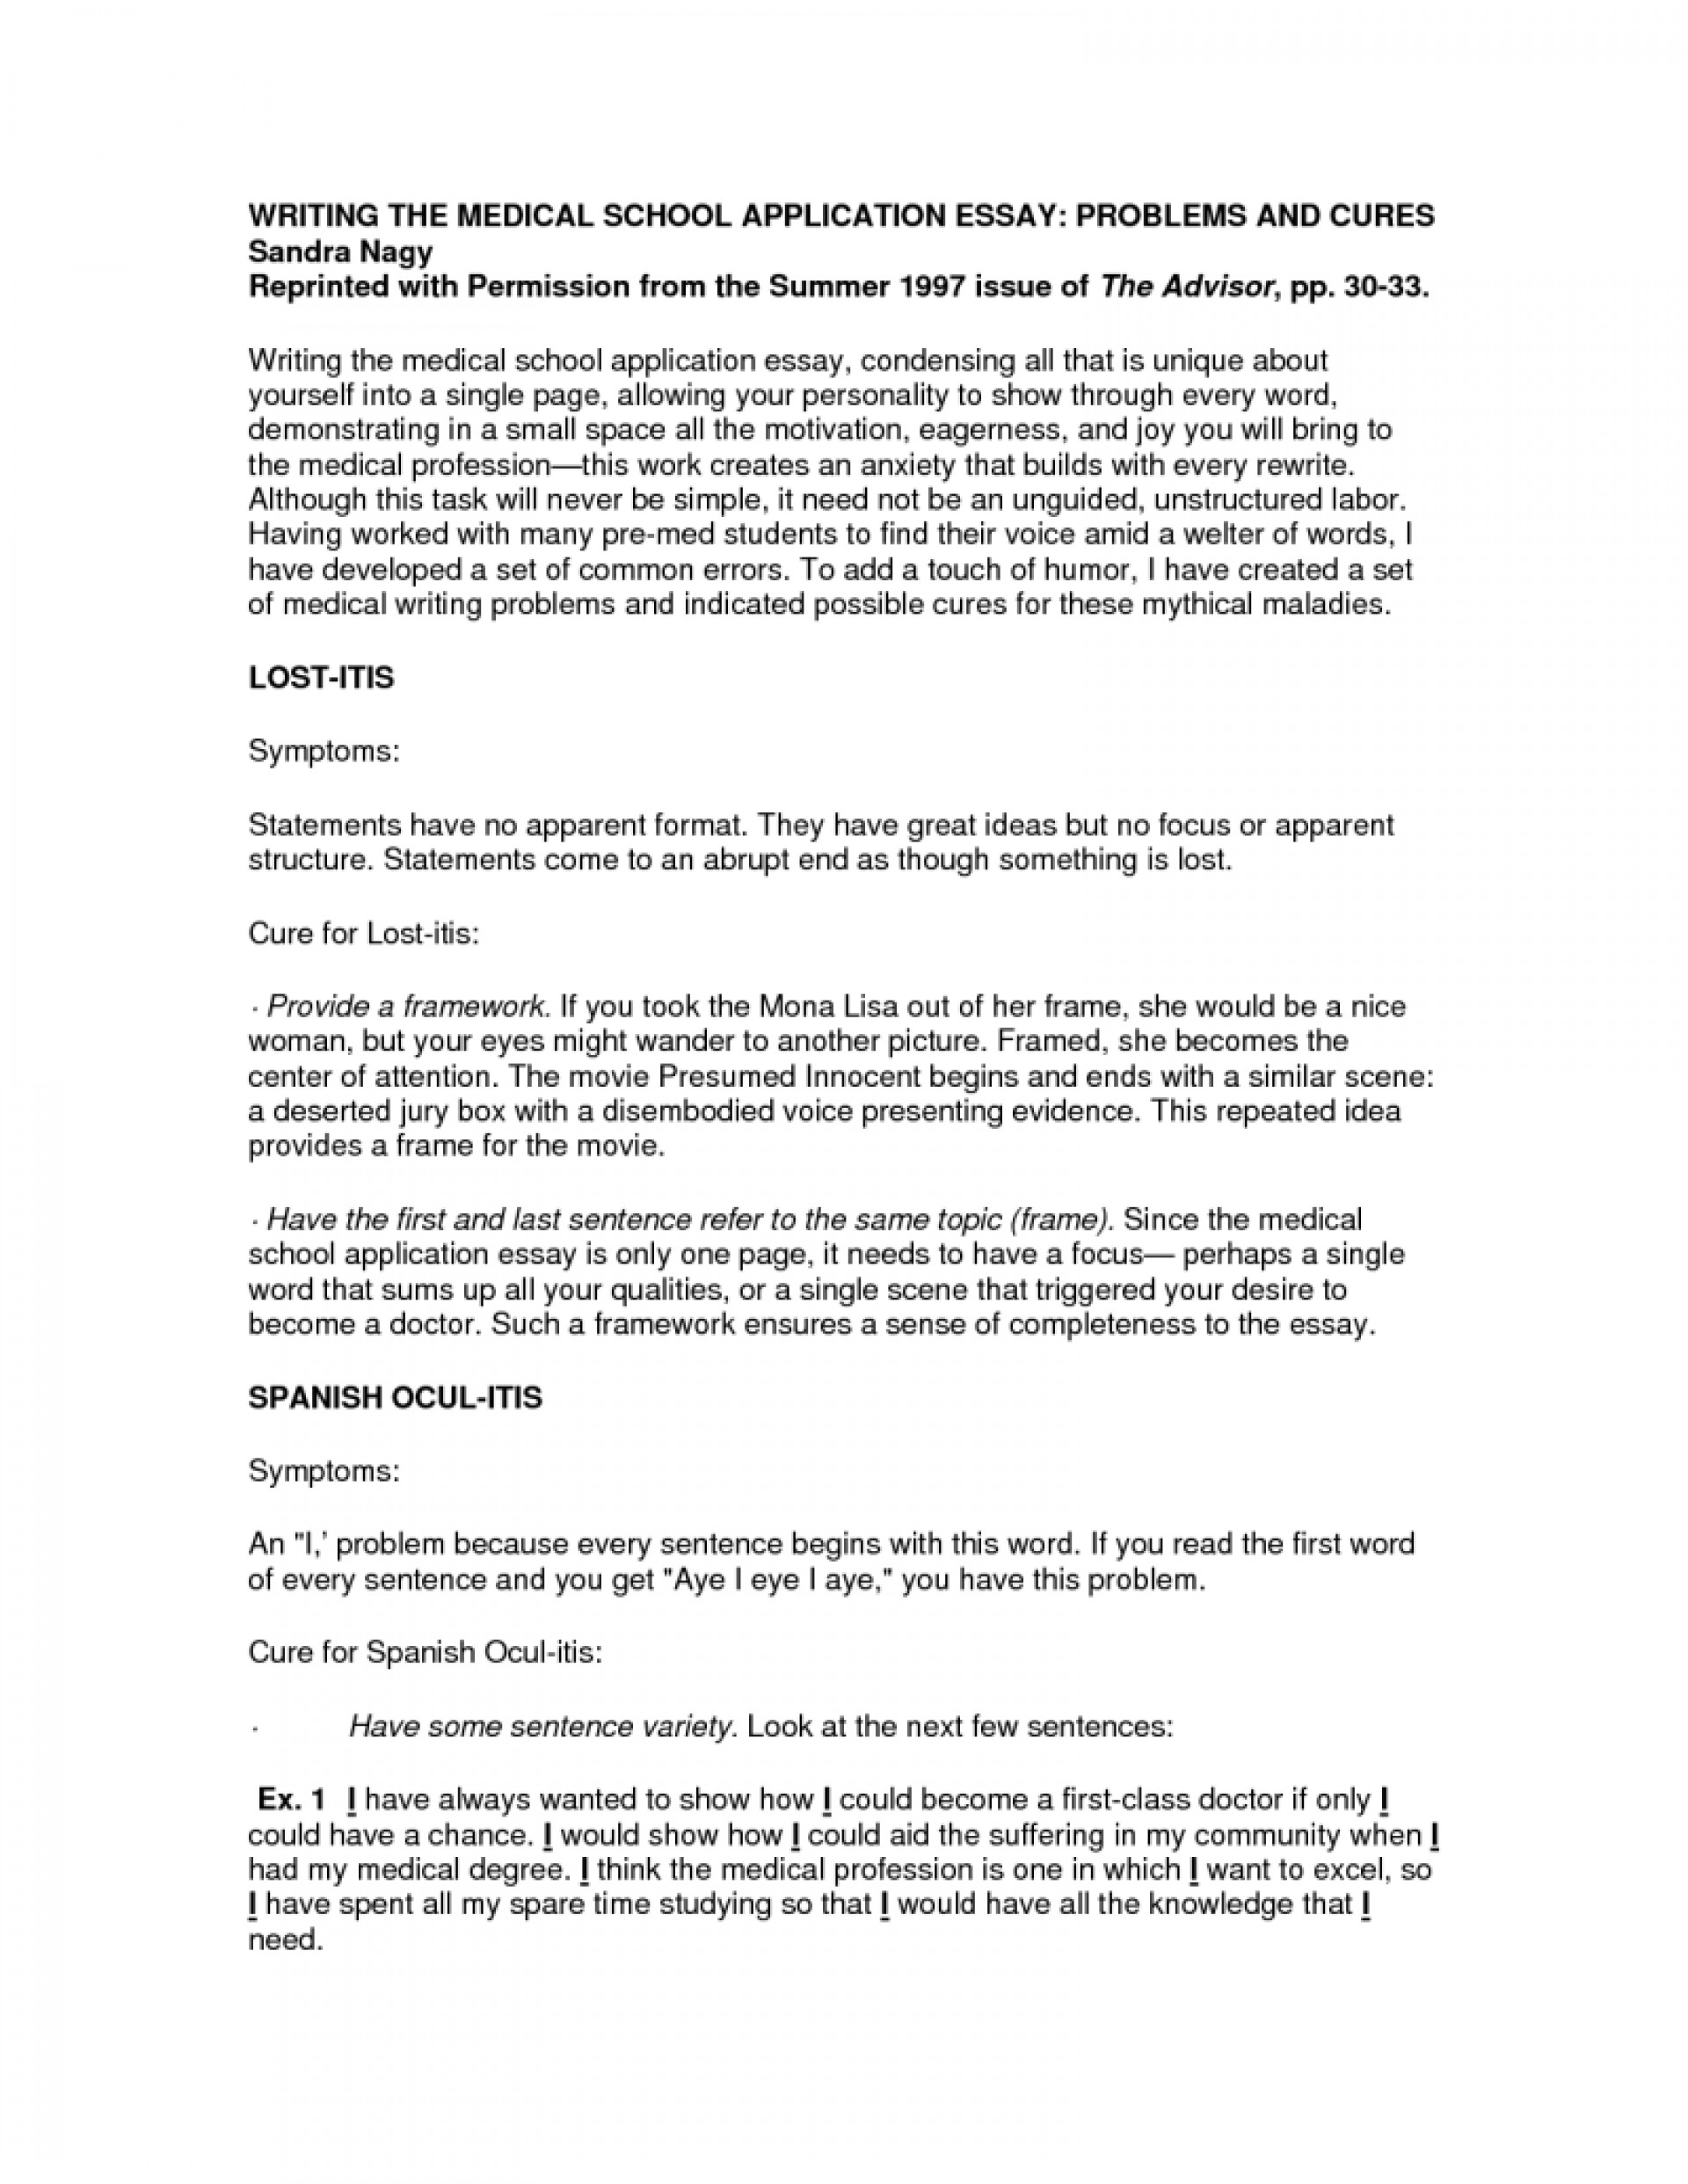 005 Examples Of Good College Application Essays On Compare And Contrast This I Believe Essay Template Qdbqo Topics Samples Fearsome Prompt Easy Funny 1920